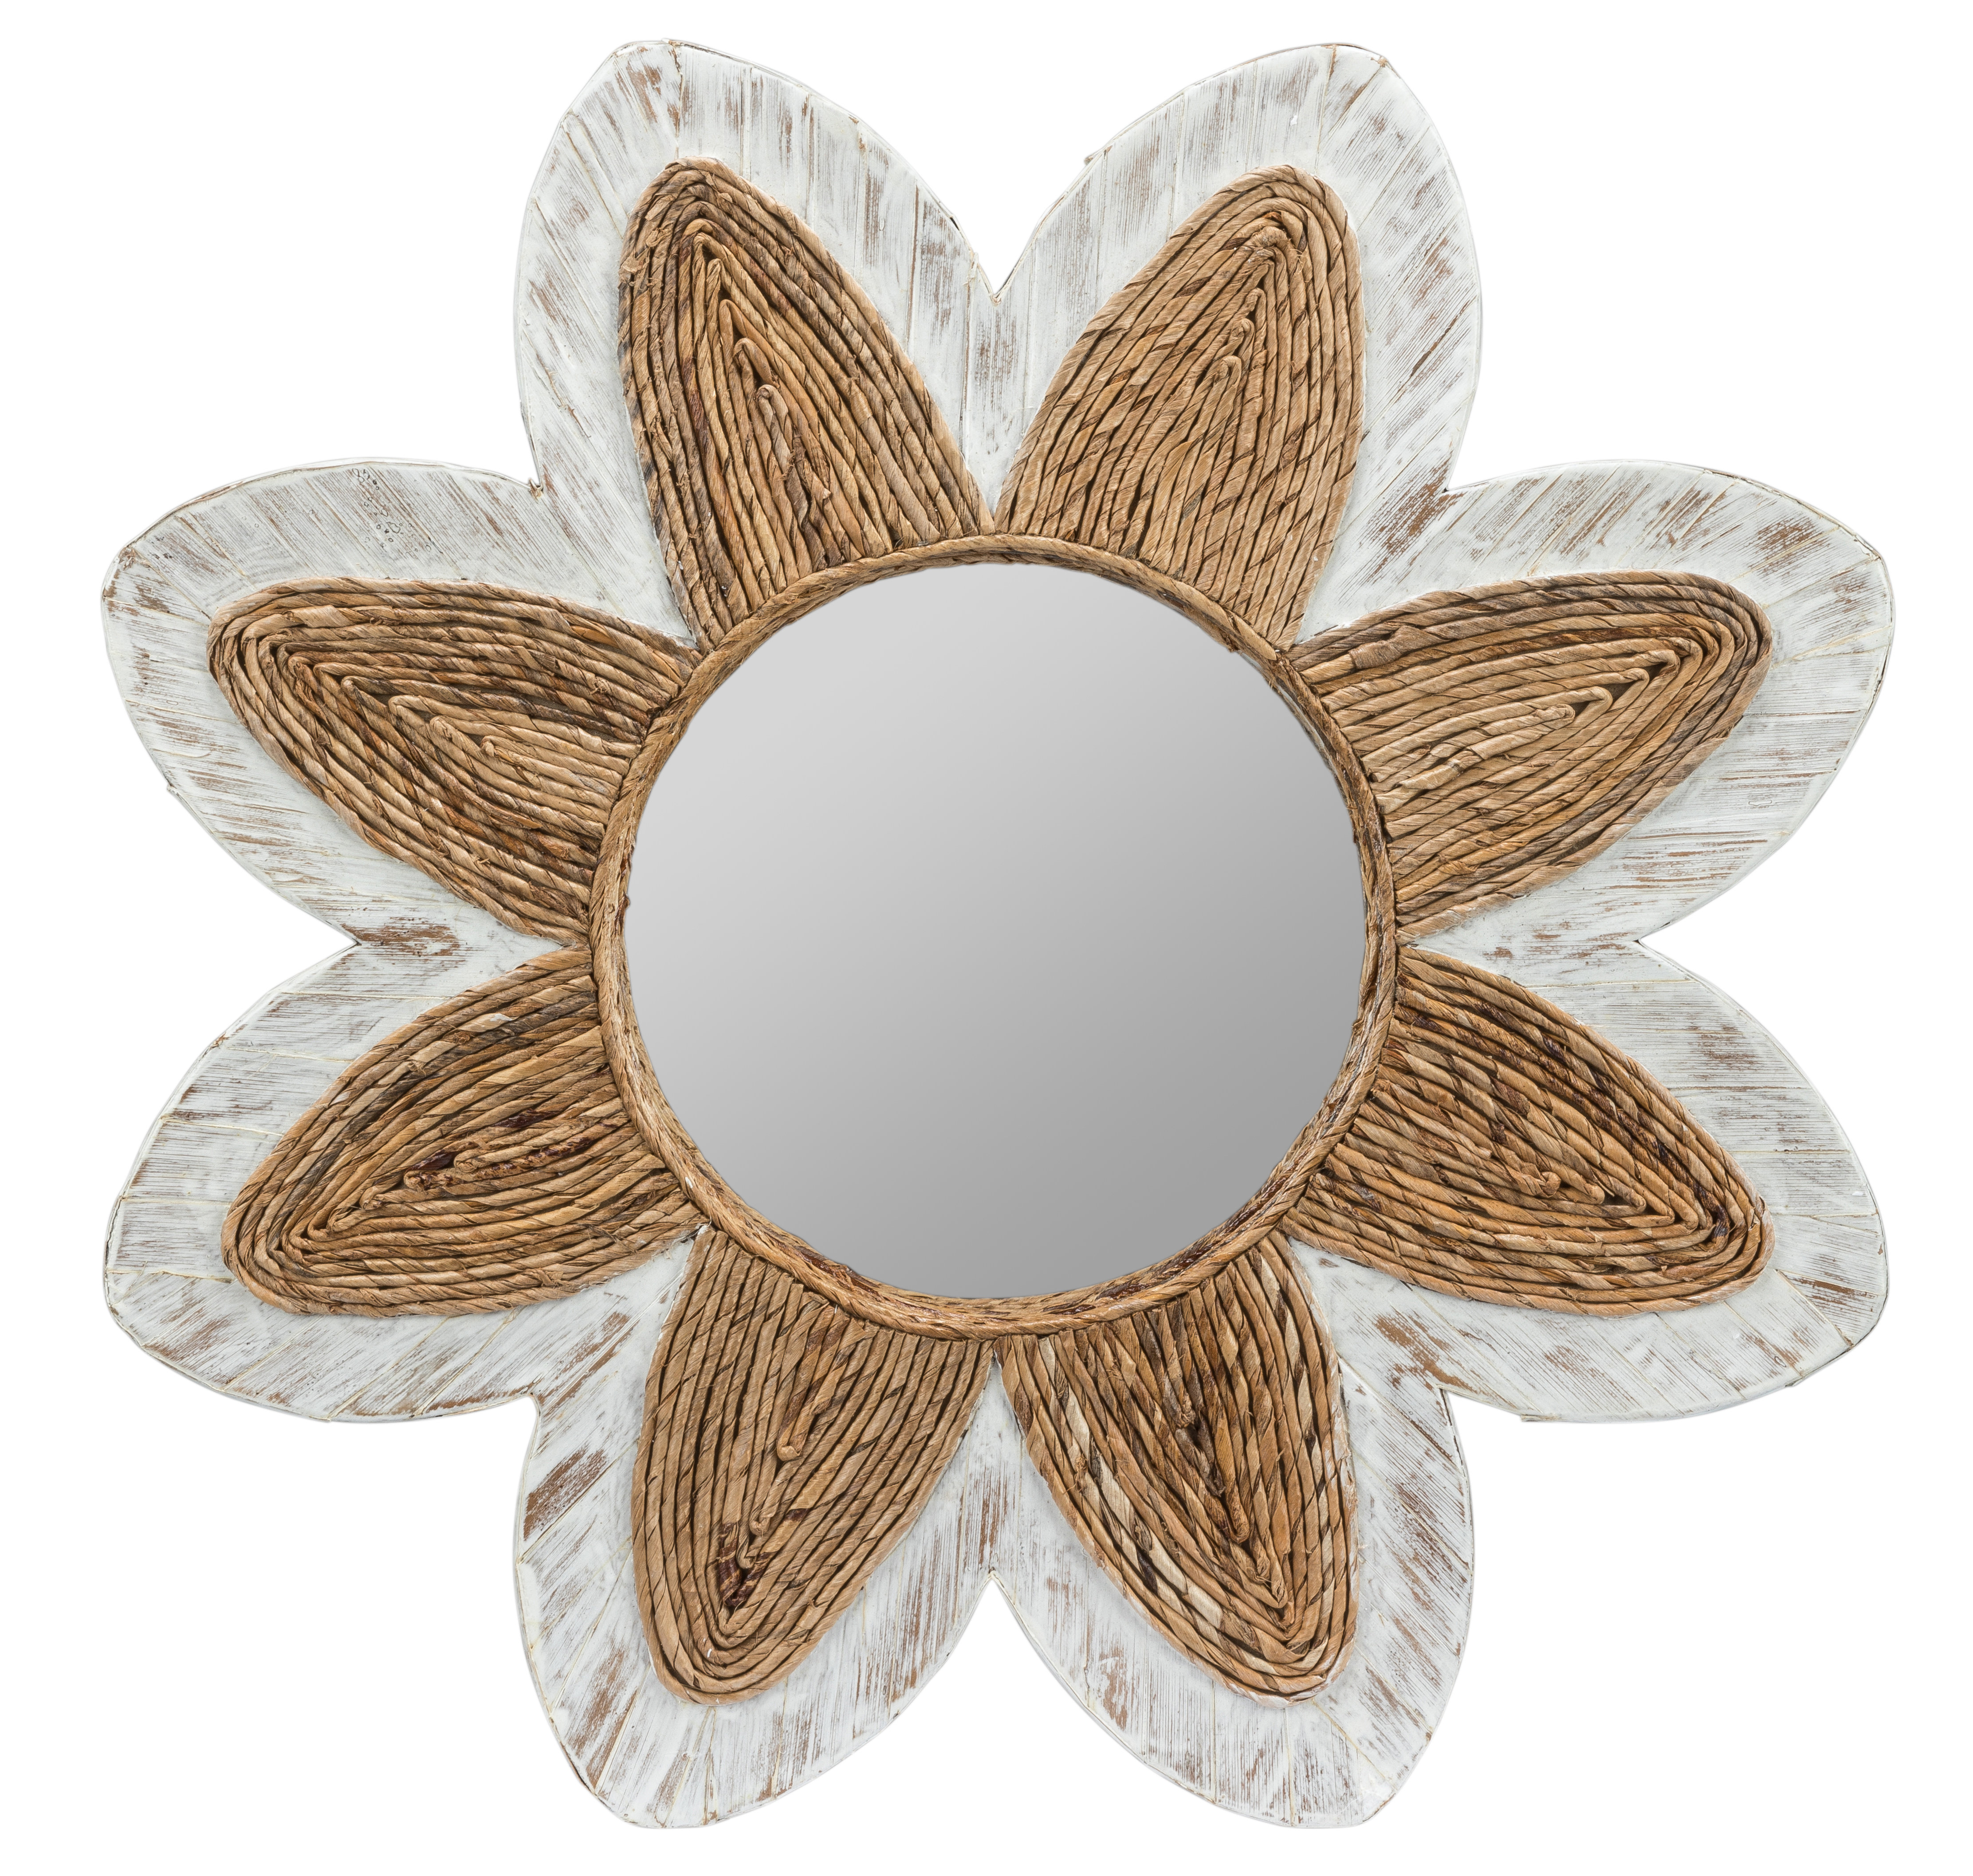 Henault Accent Mirror Throughout Sajish Oval Crystal Wall Mirrors (View 14 of 20)